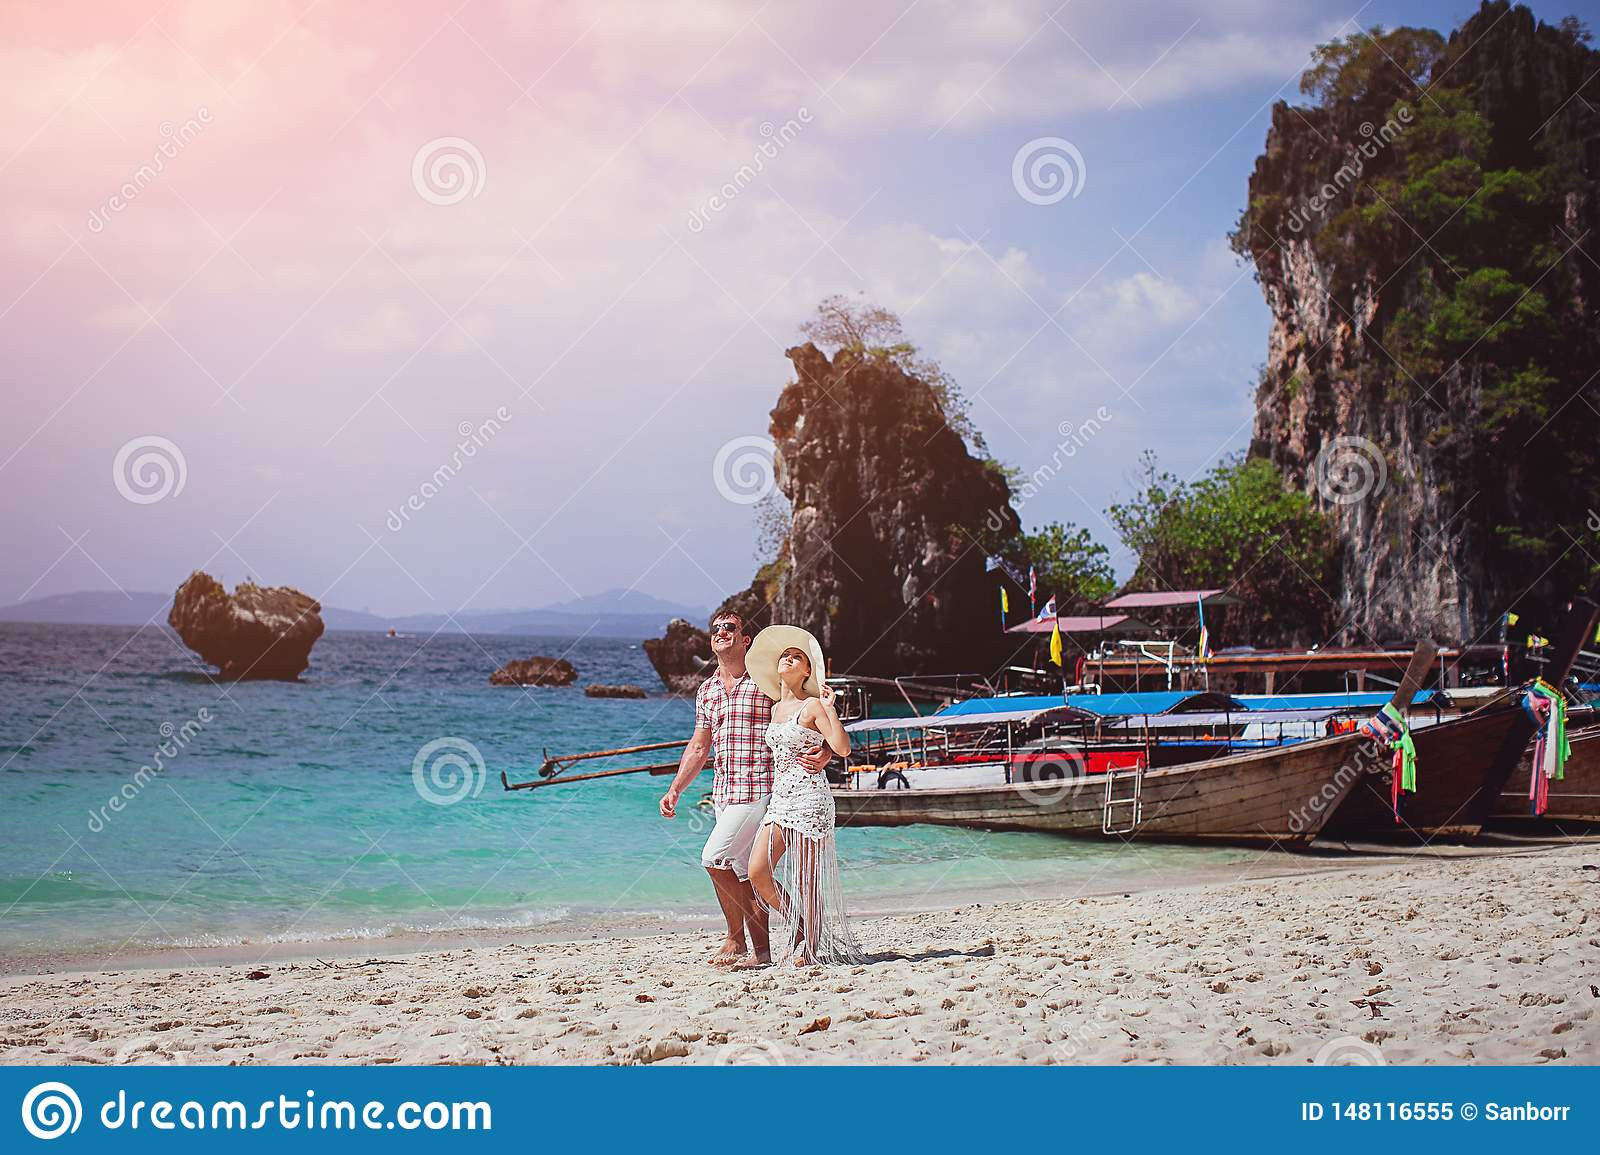 Beautiful happy couple, hugging, walking on the beach against the sea, mountains, gondolas. A girl in a hat and a guy on vacation